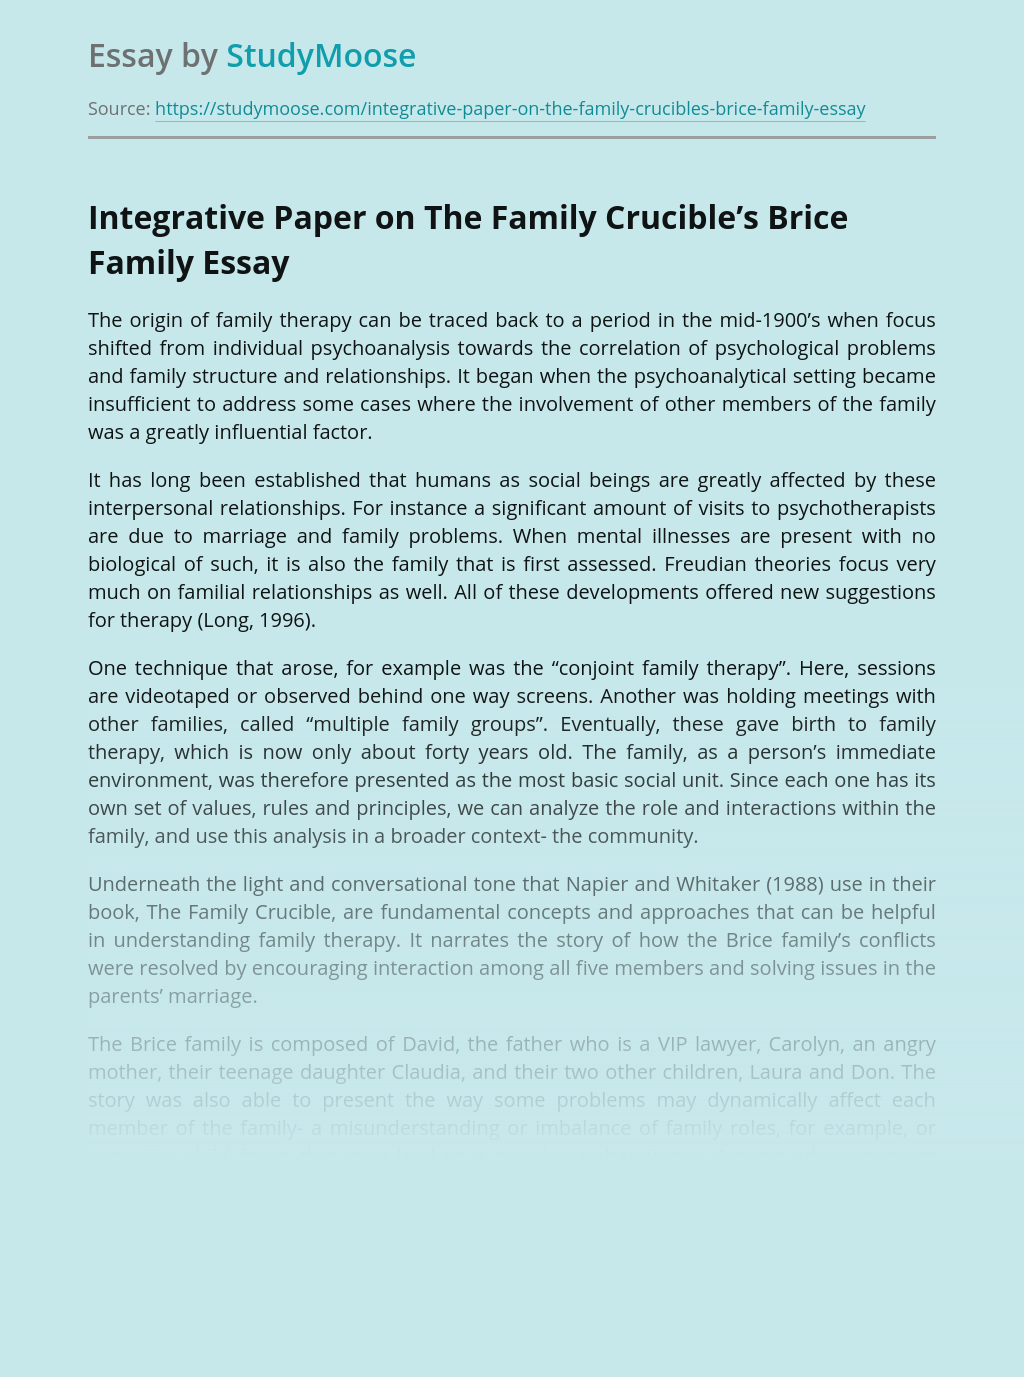 Integrative Paper on The Family Crucible's Brice Family